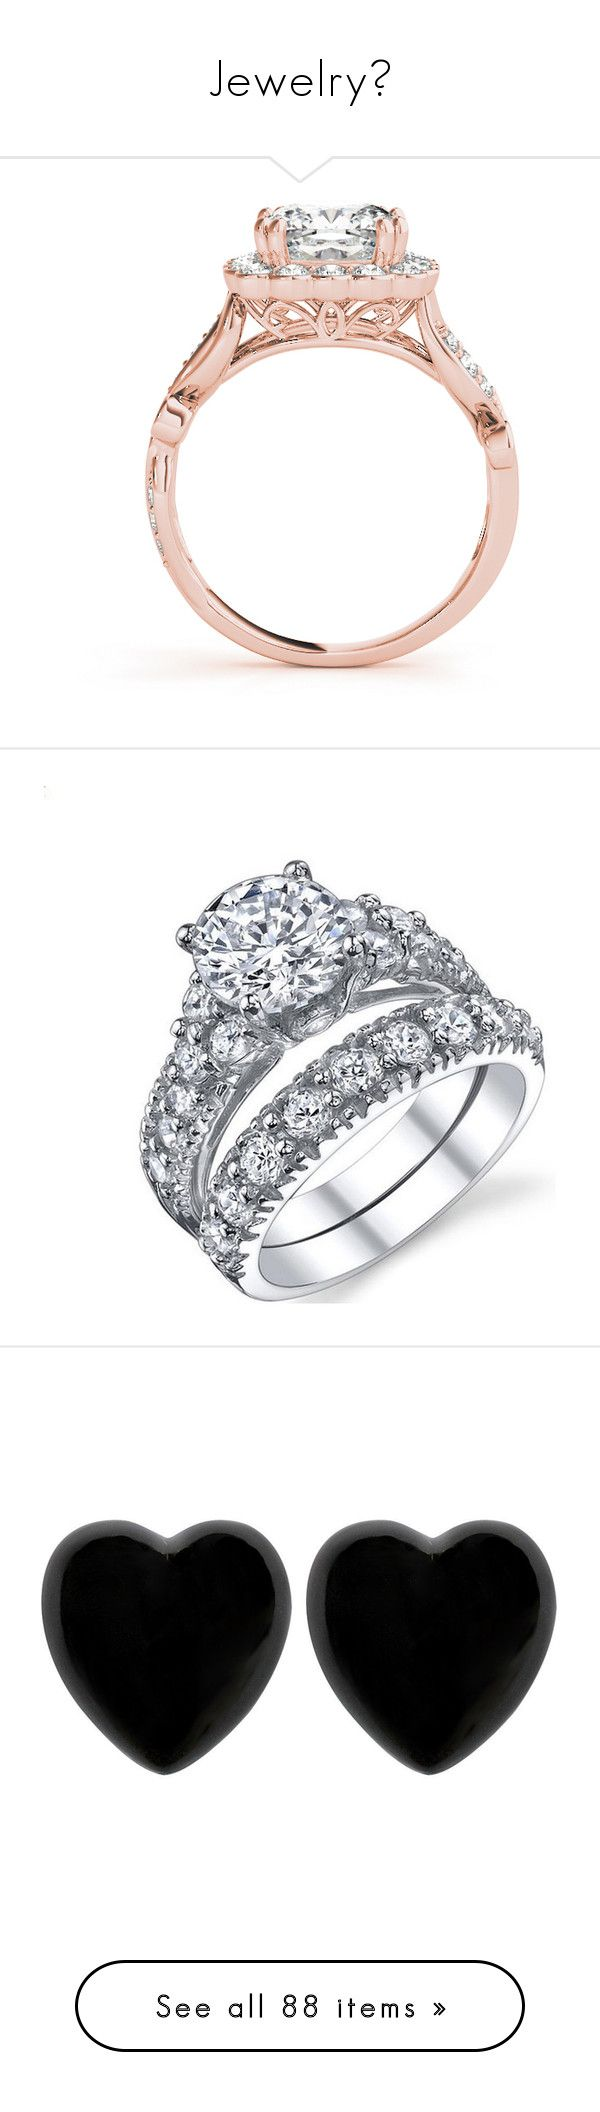 """""""Jewelry"""" by skh-siera18 ❤ liked on Polyvore featuring jewelry, rings, filigree wedding rings, square cut engagement rings, square wedding rings, rose gold ring, halo diamond engagement rings, cubic zirconia rings, diamond wedding rings and wedding rings"""